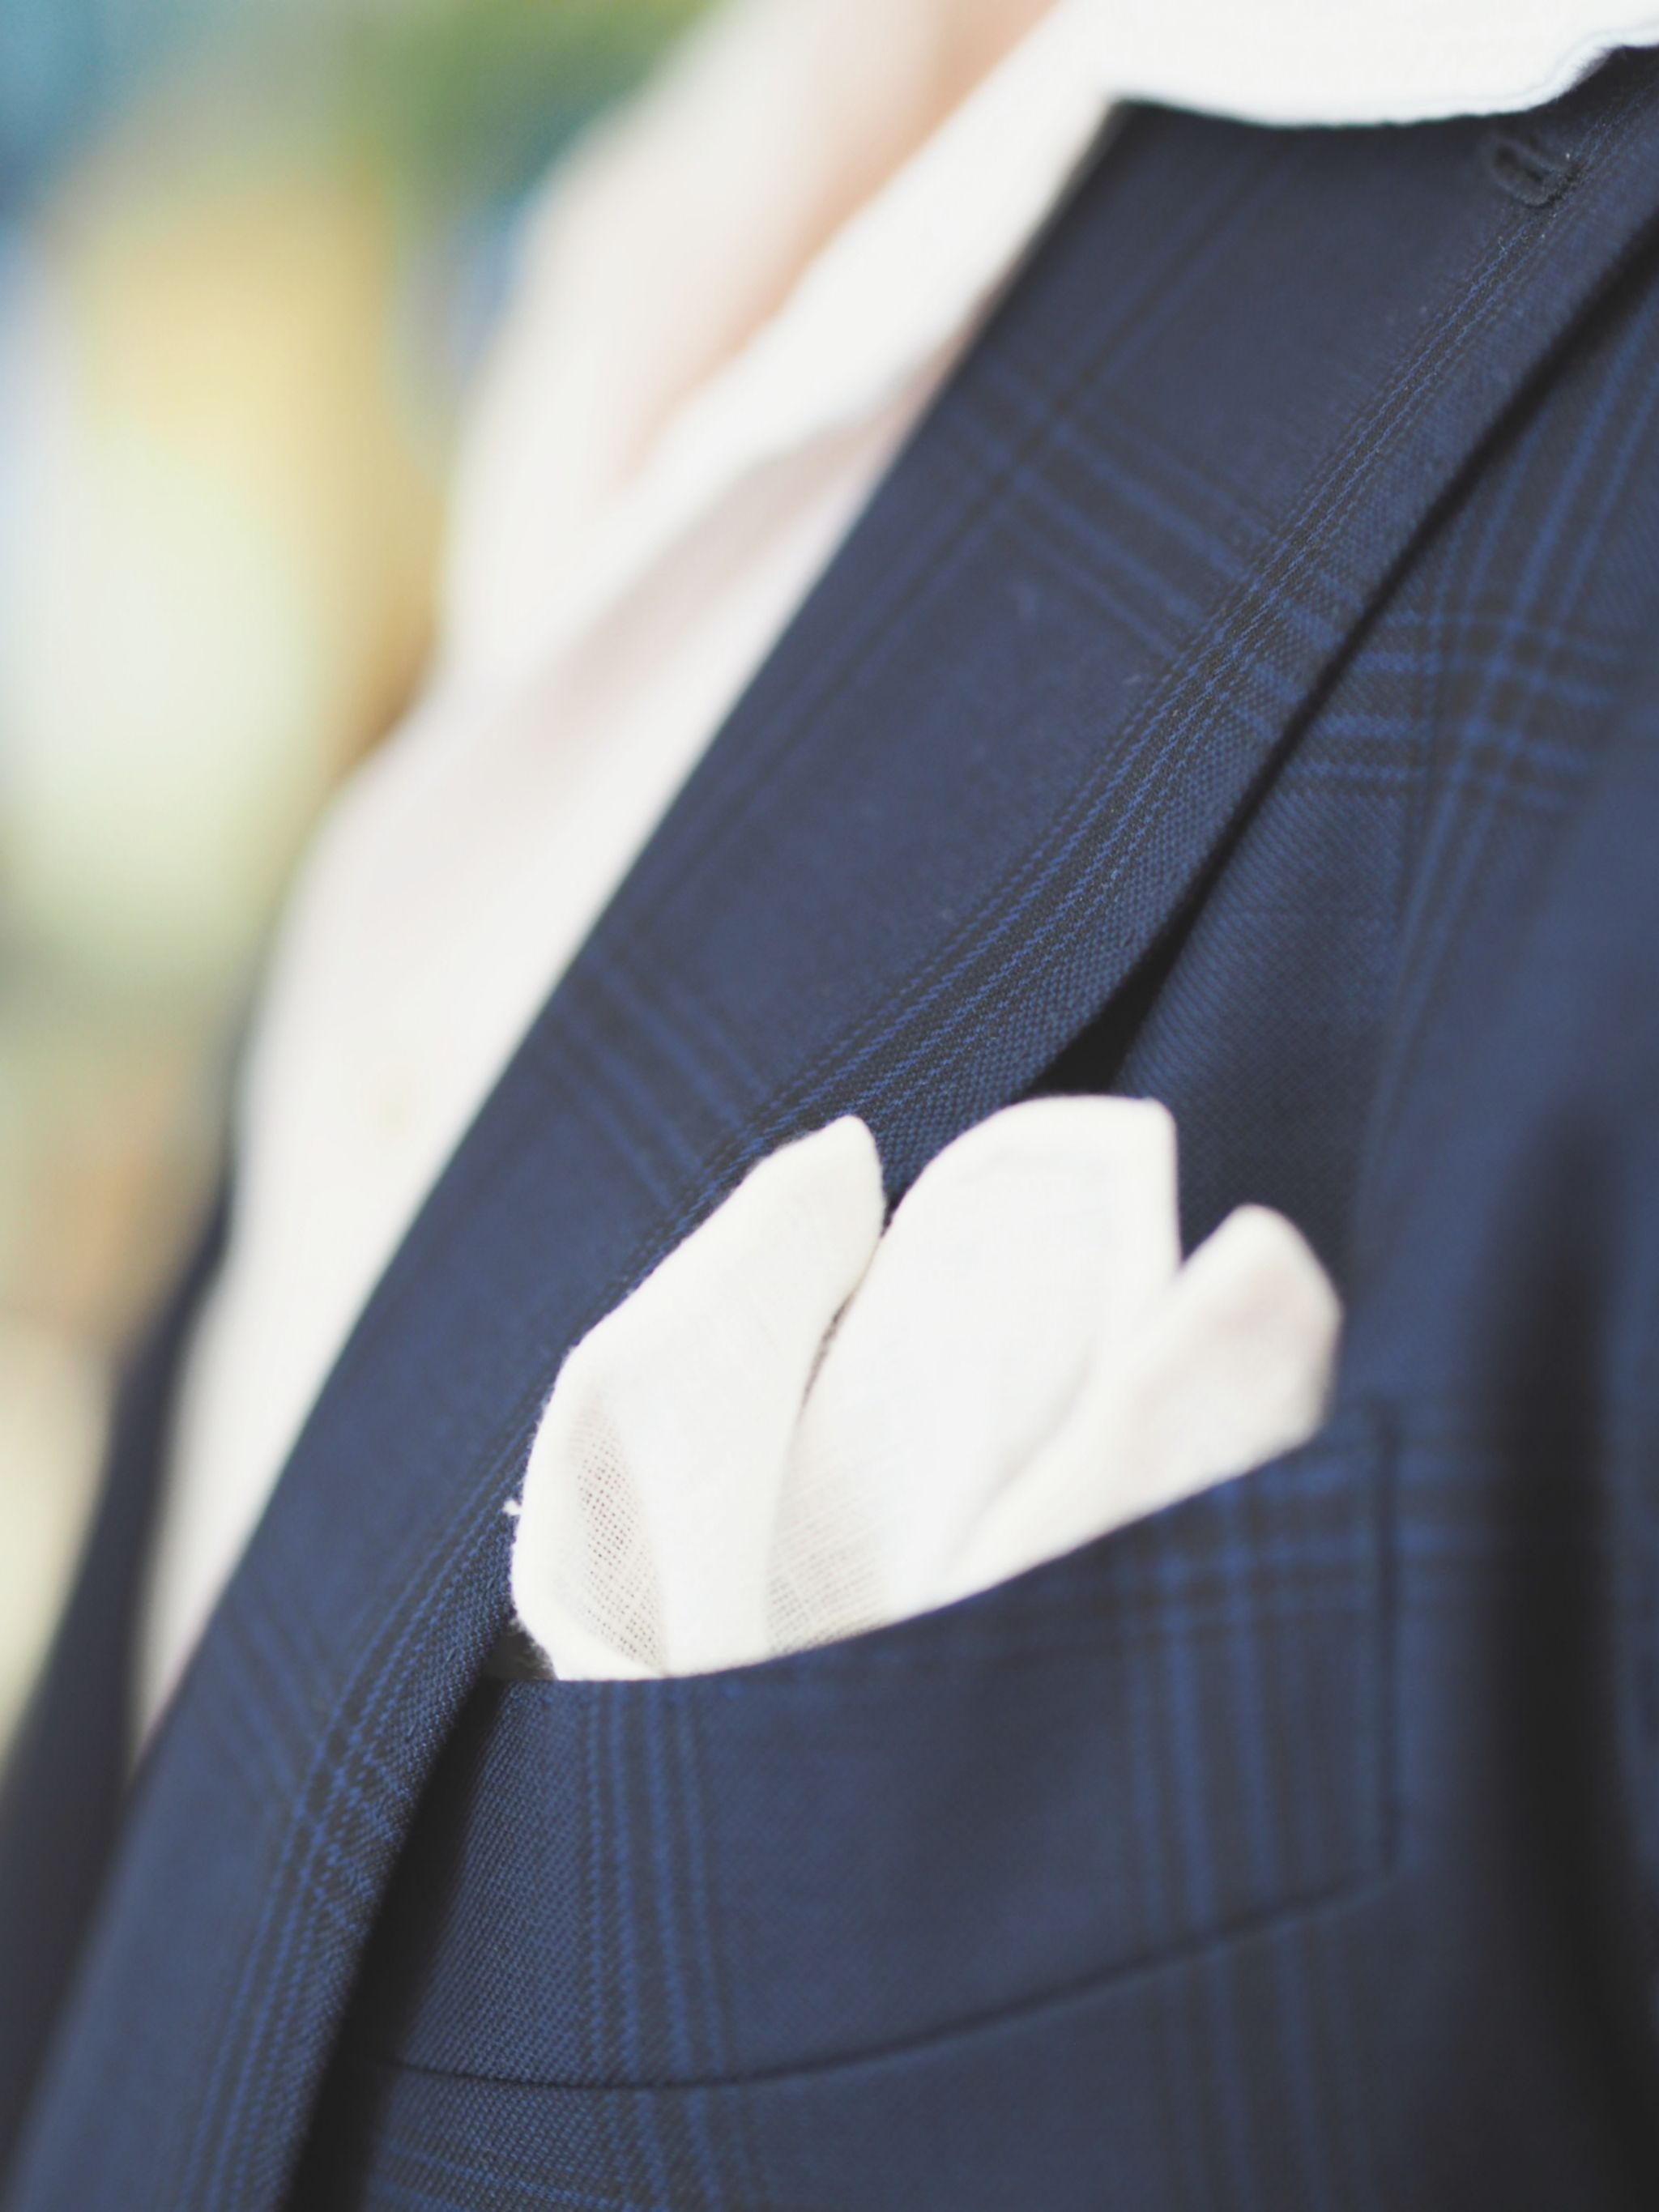 How to wear the same suit in different ways - white linen pocket square details.